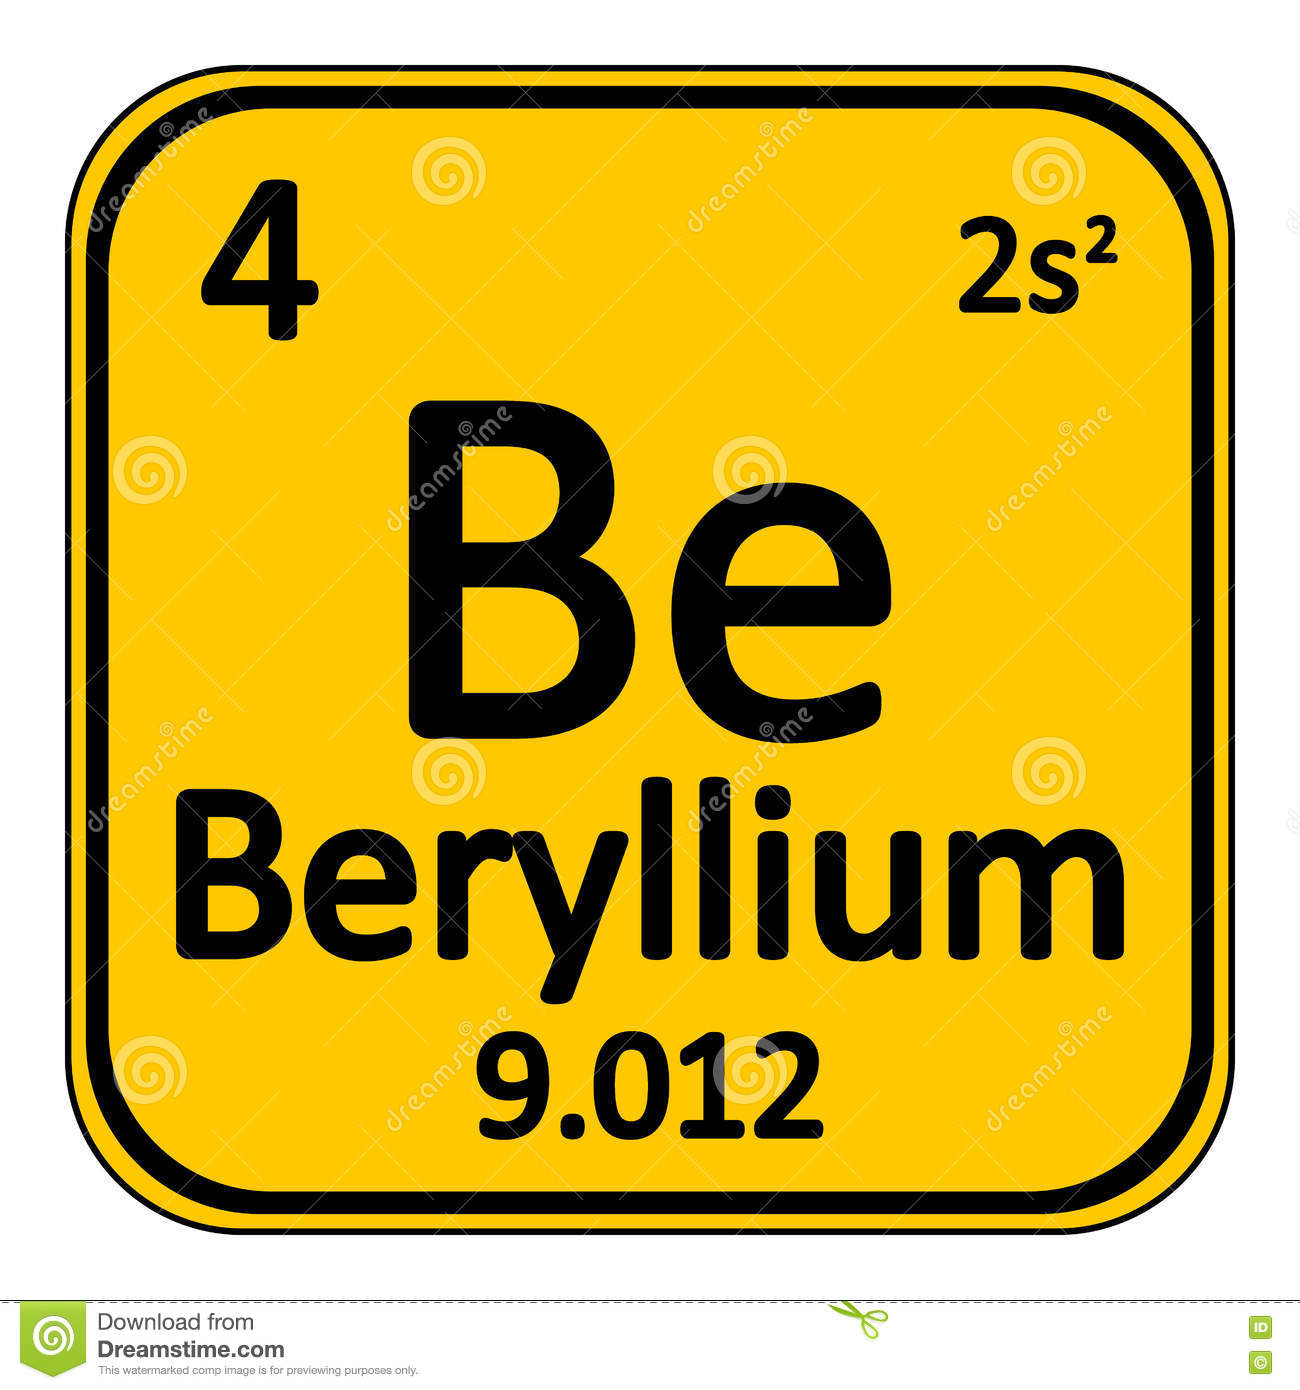 Periodic table element beryllium icon stock illustration periodic table element beryllium icon biocorpaavc Images